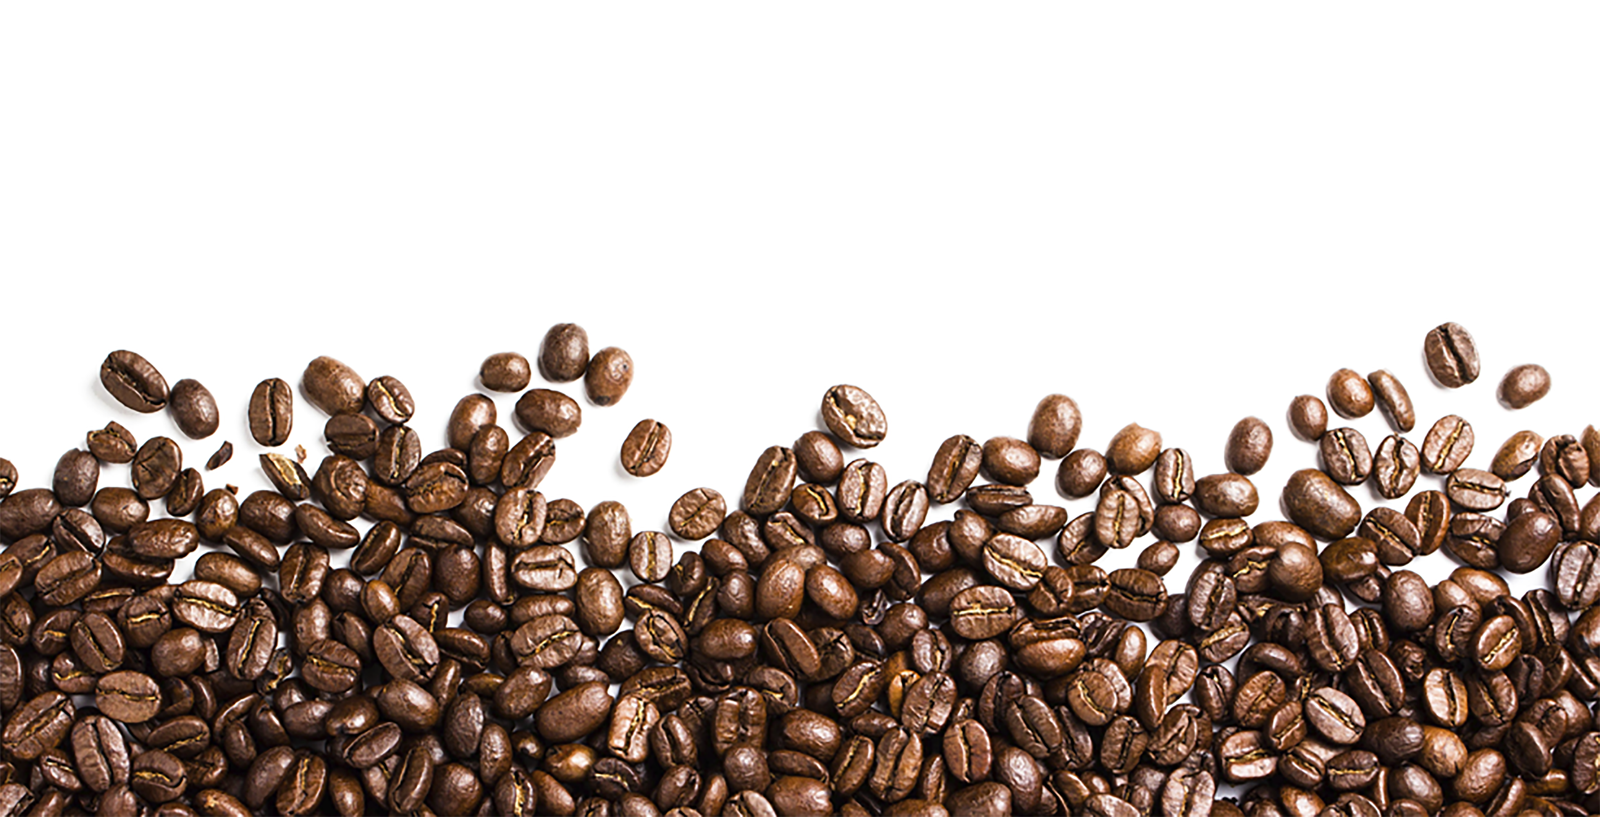 Clipart coffee coffee powder. Beans png images free